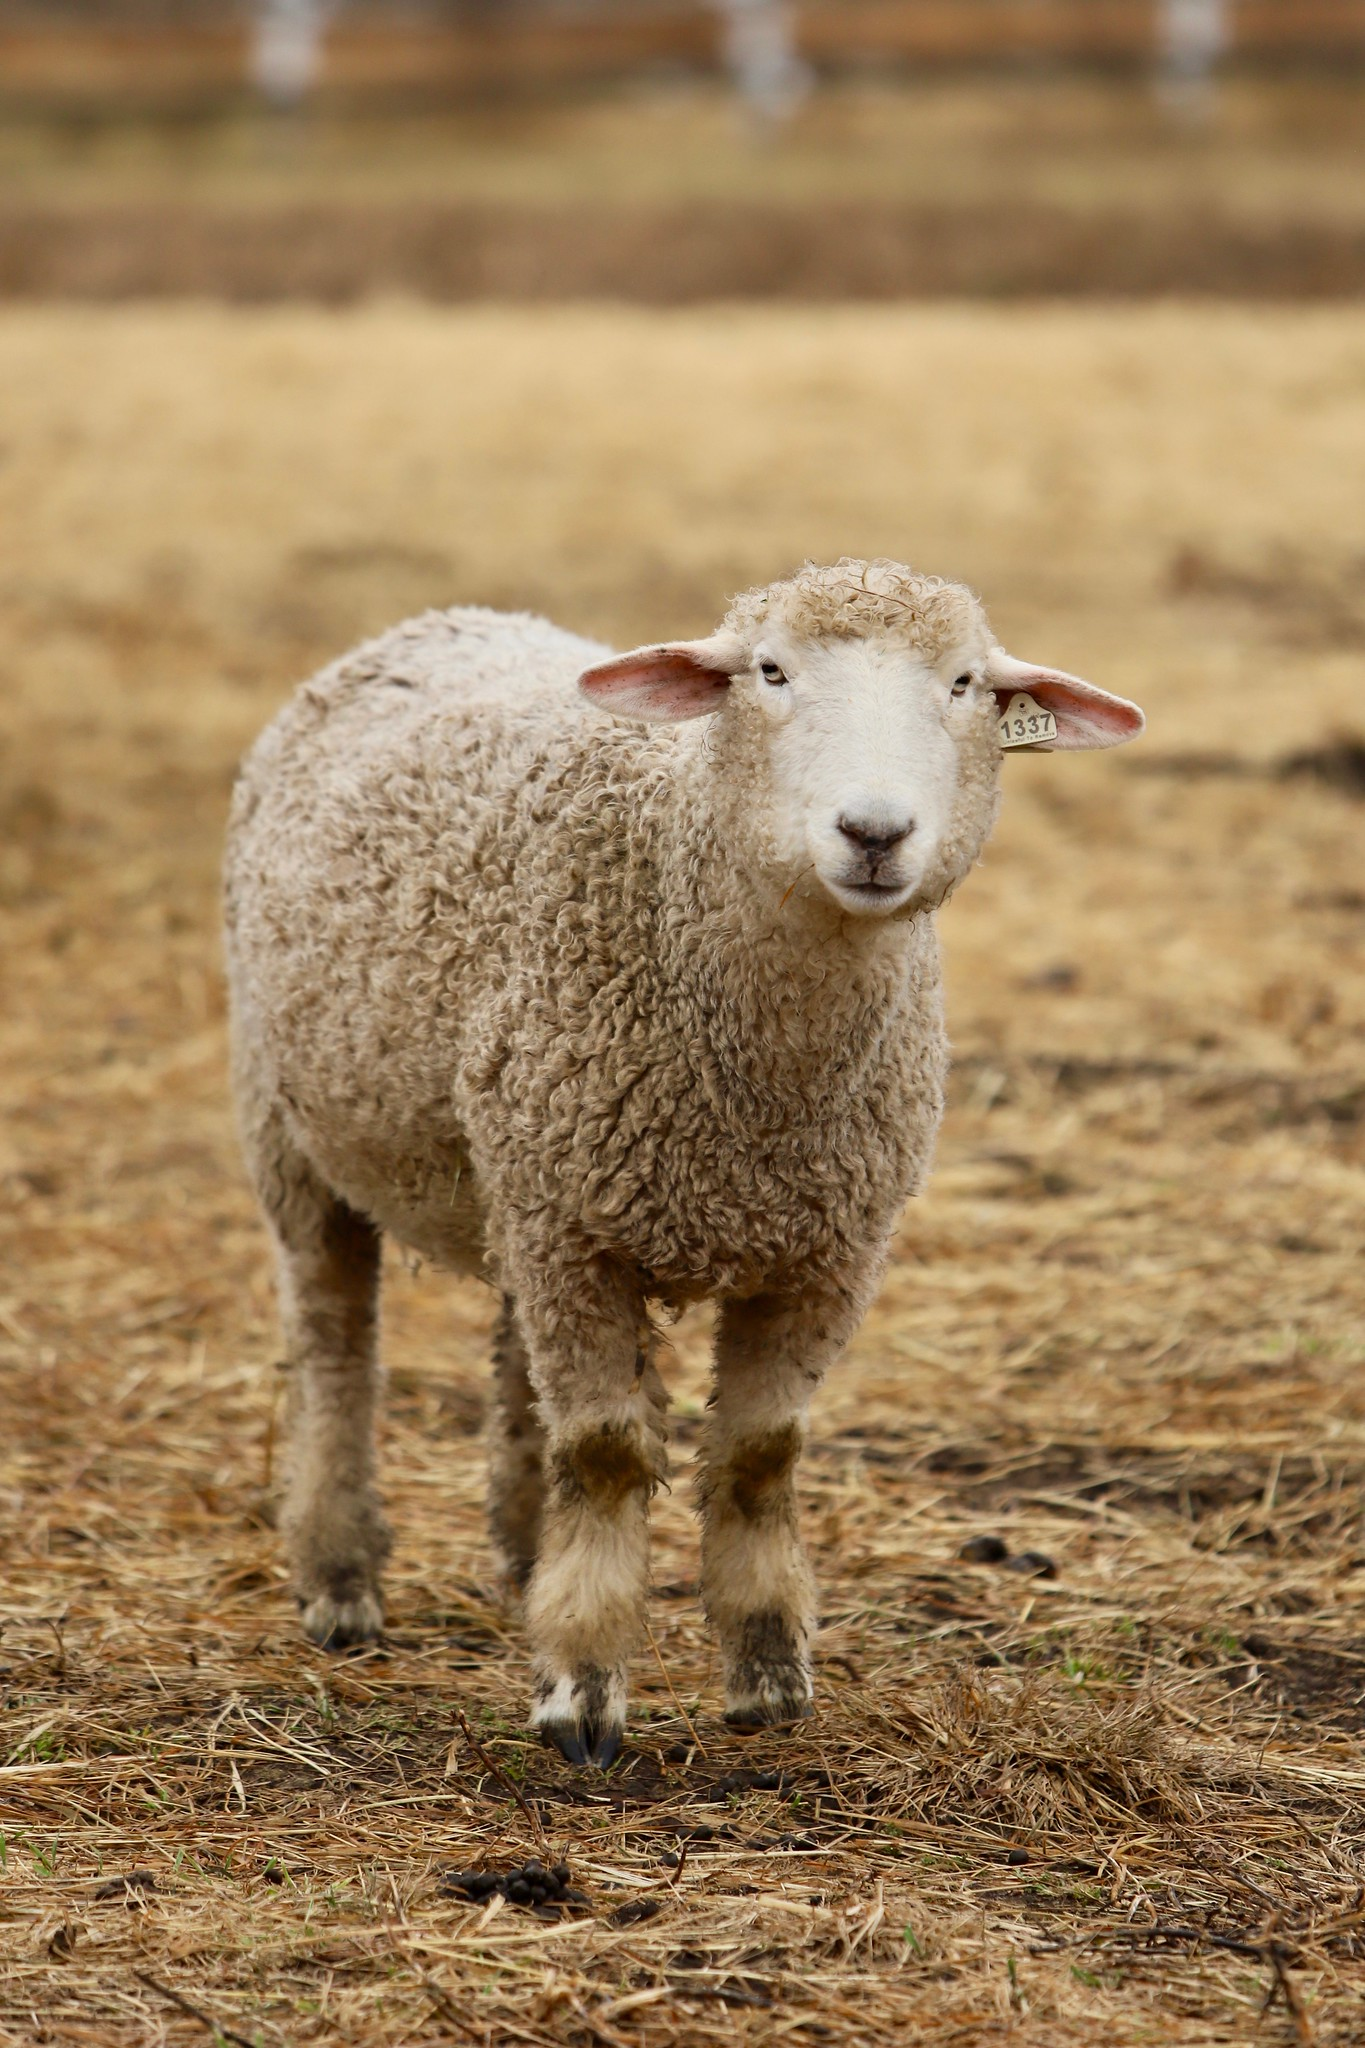 Sawkill Farm Sheep